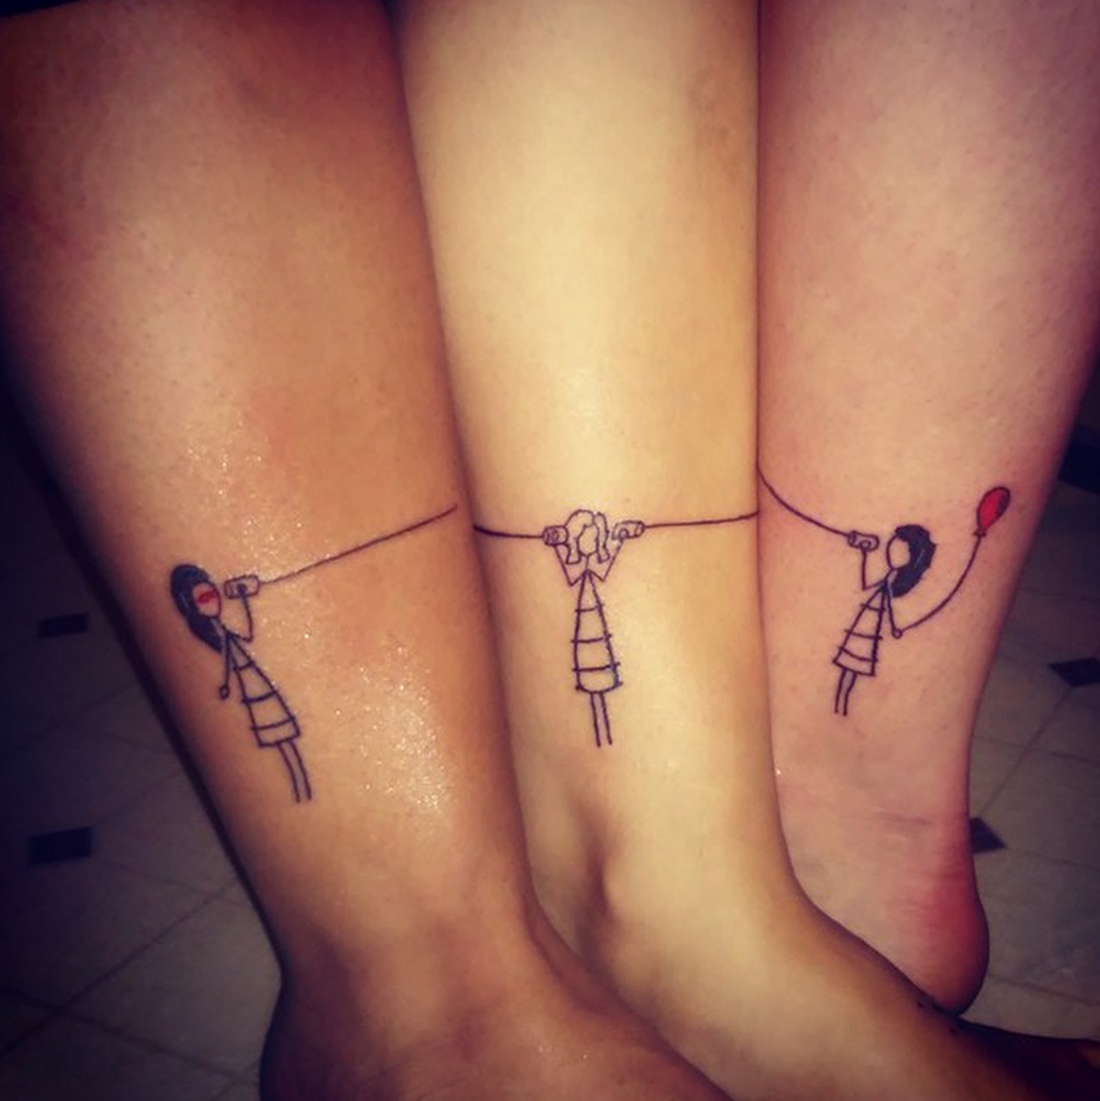 15 Friendship Tattoos That Aren't Totally Cheesy | Tattoos for daughters, Matching tattoos, Friendship tattoos